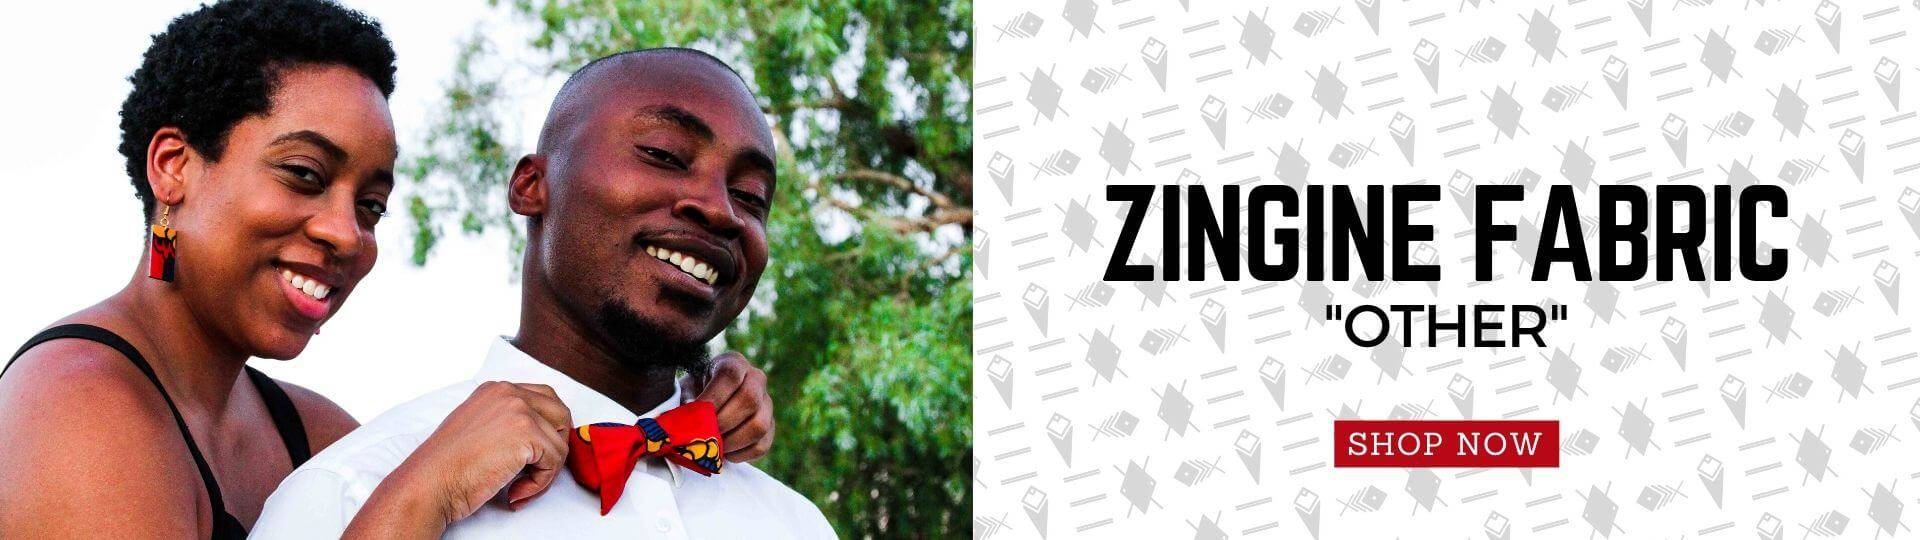 Zingine (Swahili Translation = Other) Fabric Collection from Ceiphers Clothing